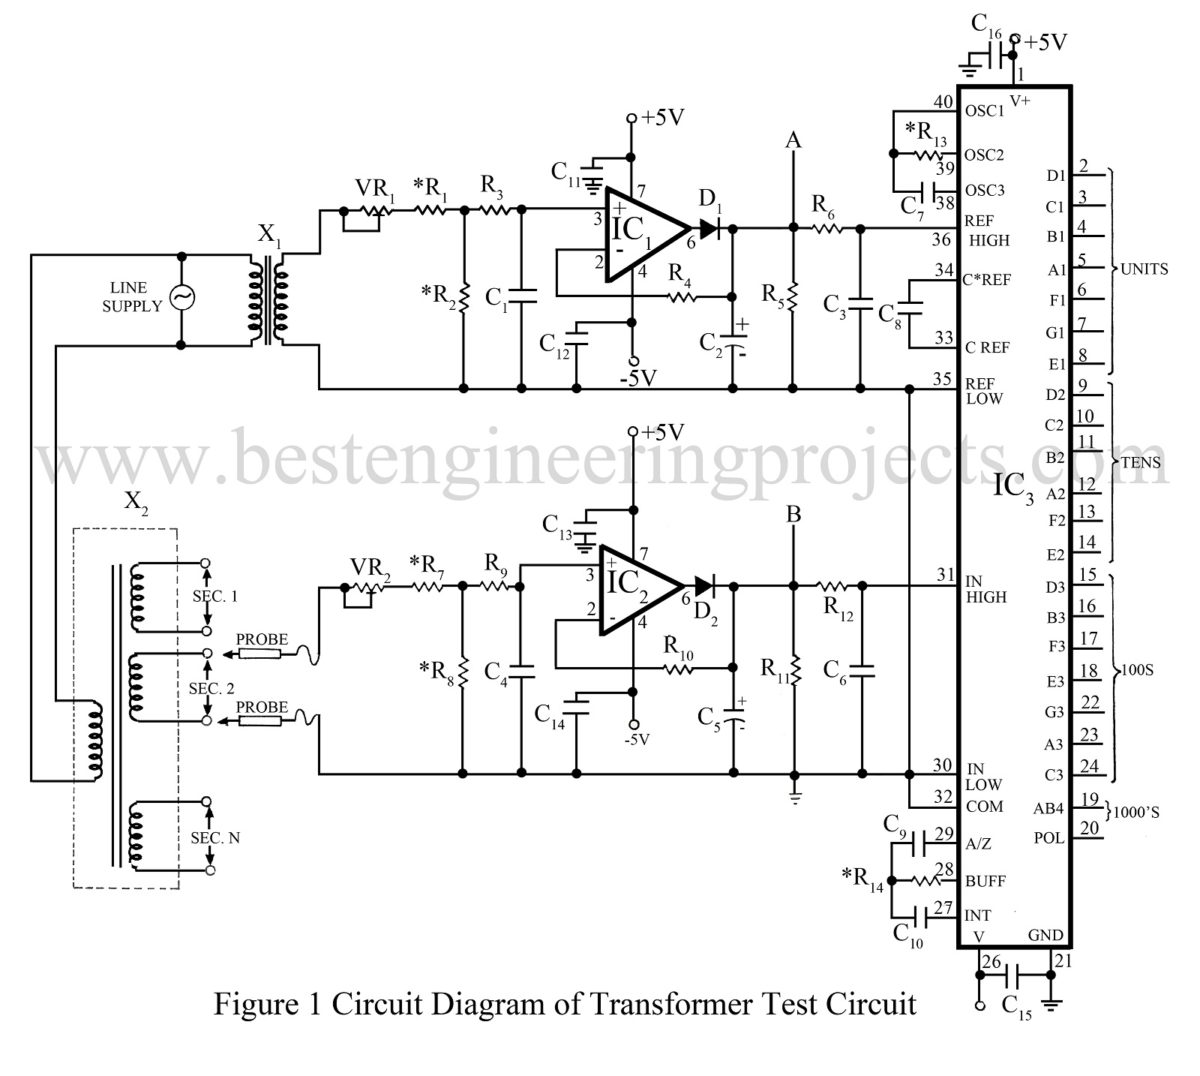 Transformer Test Circuit to Overcome Line Voltage